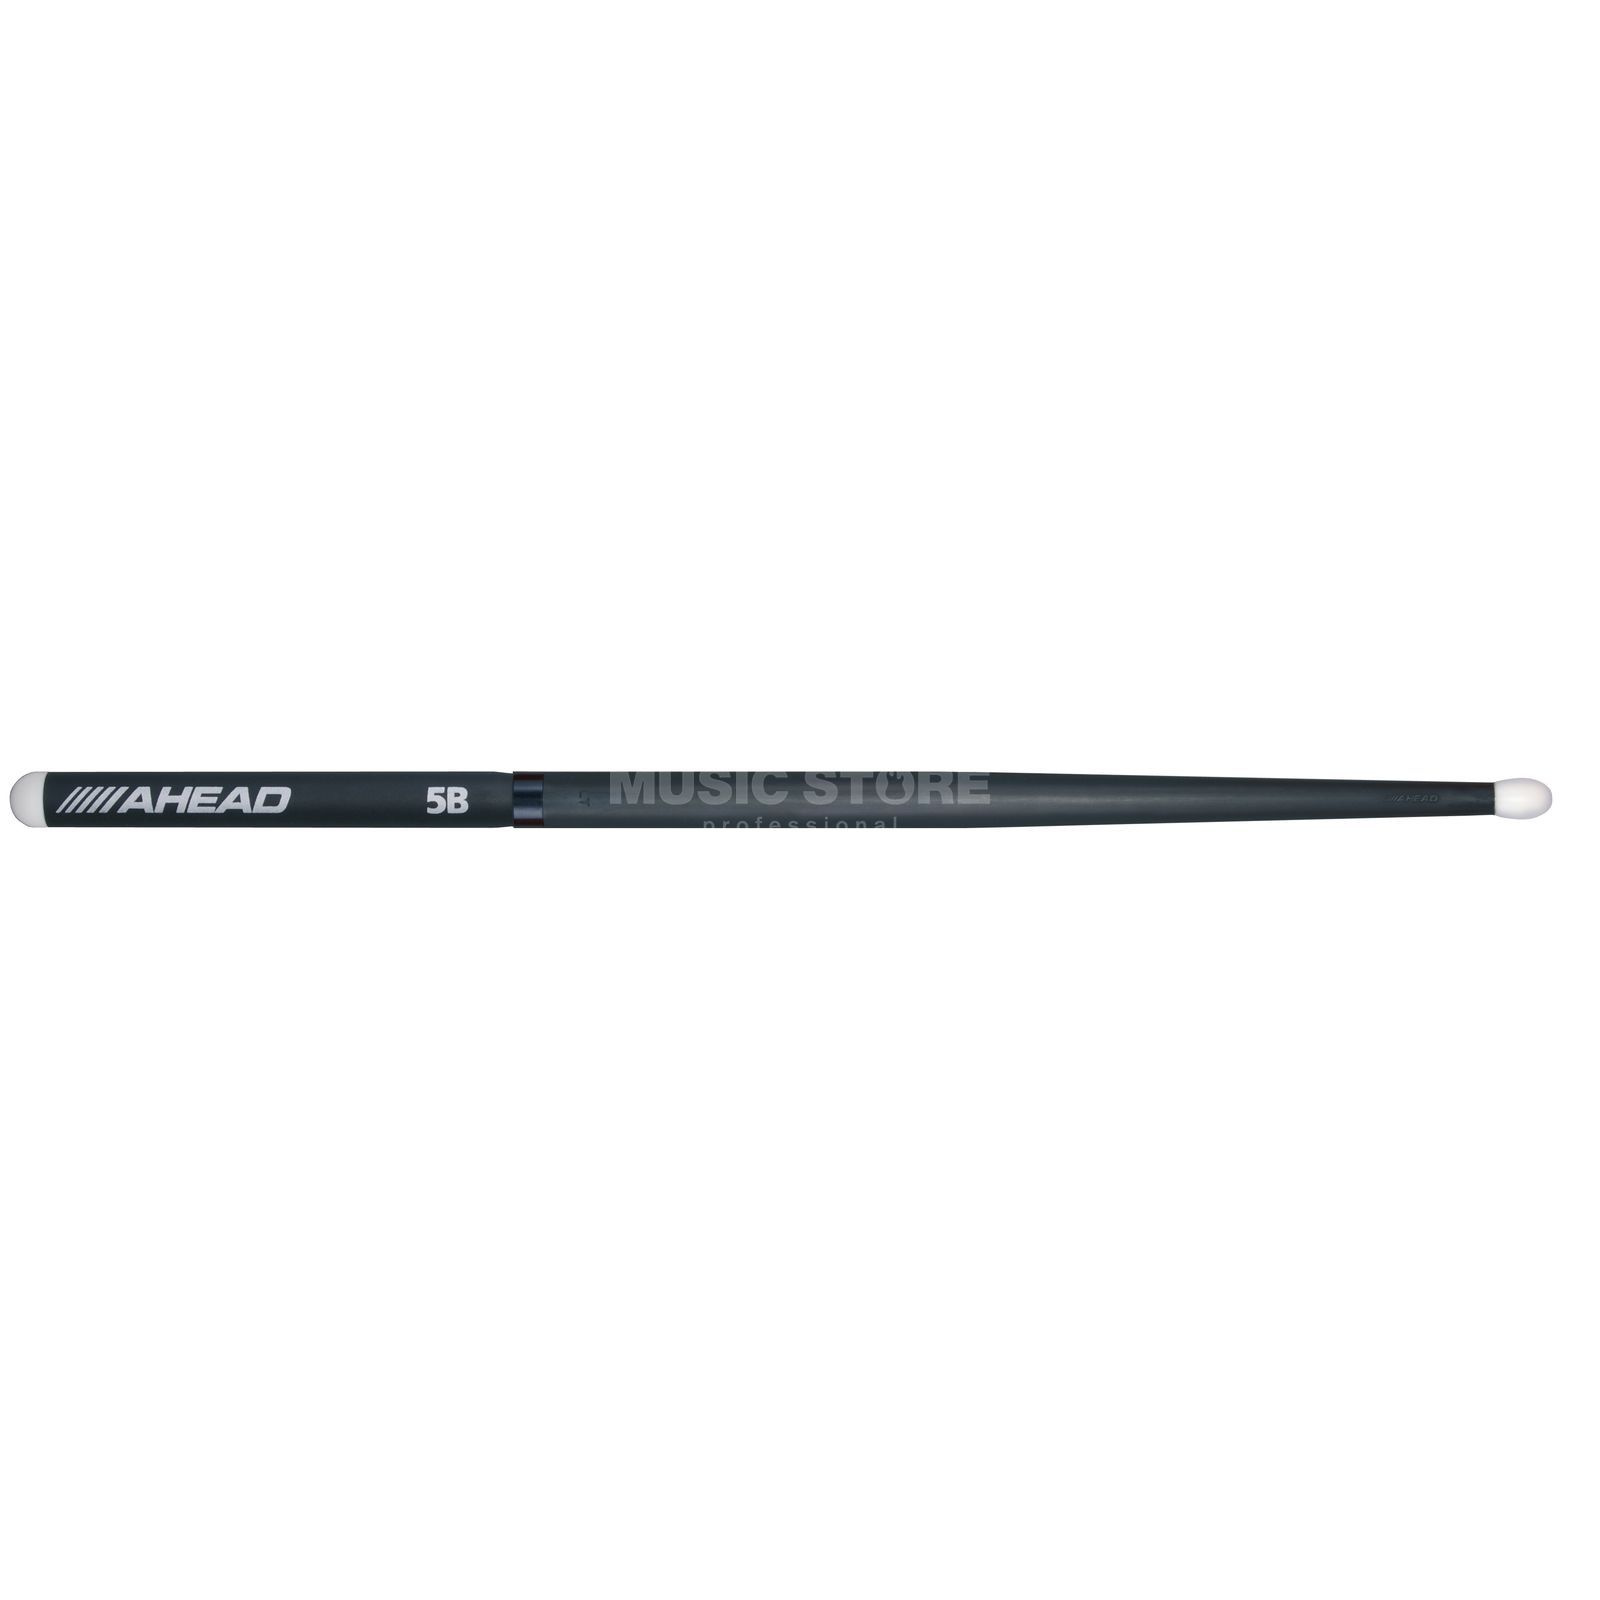 Ahead Sticks 5B Light Rock Aluminium Sticks Long Taper Produktbillede